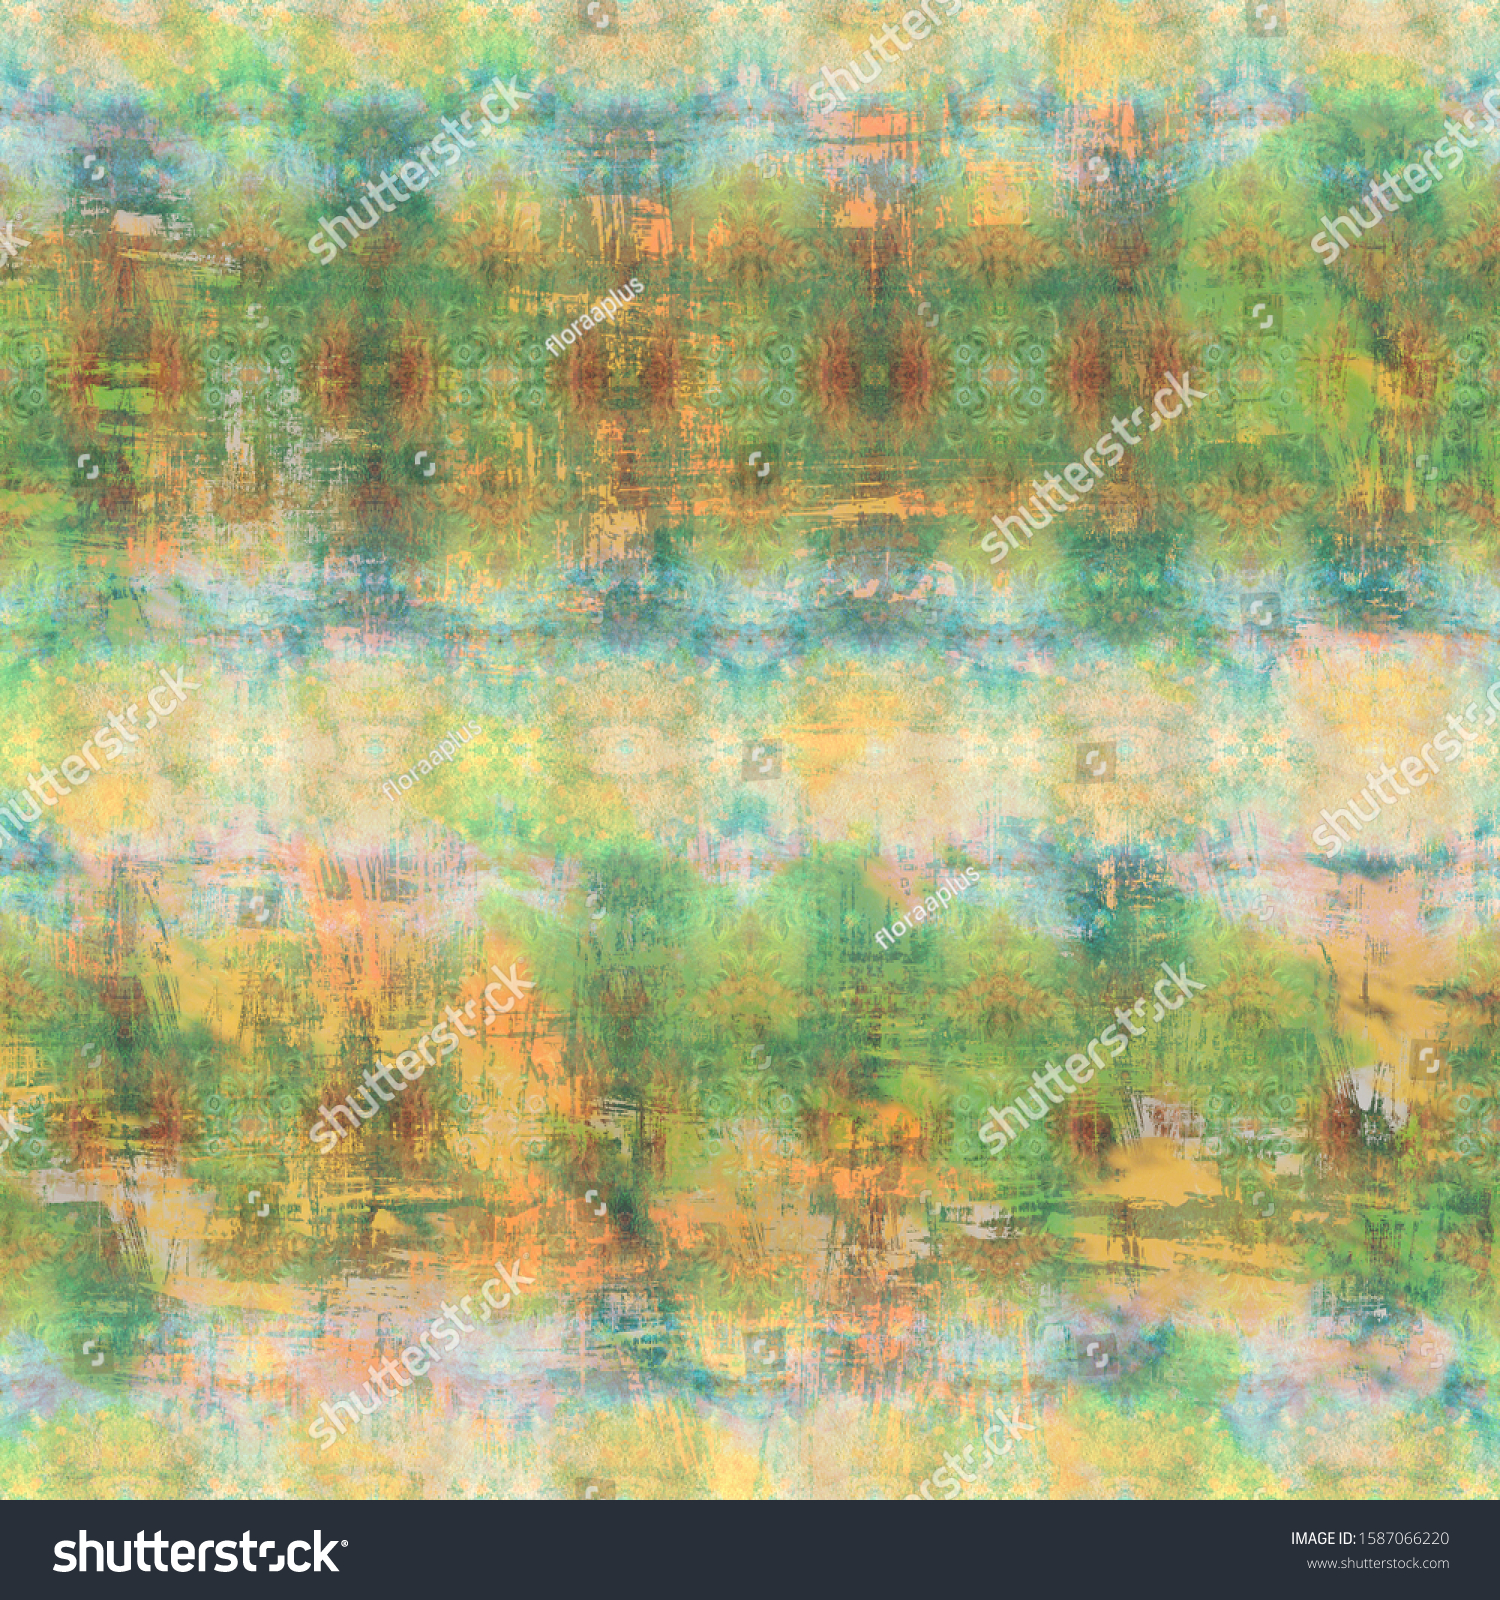 Beige-Green shabby vintage patterned background. Artificially aged bohemian wallpaper in grunge style. Design for handicraft and mass production of various goods.